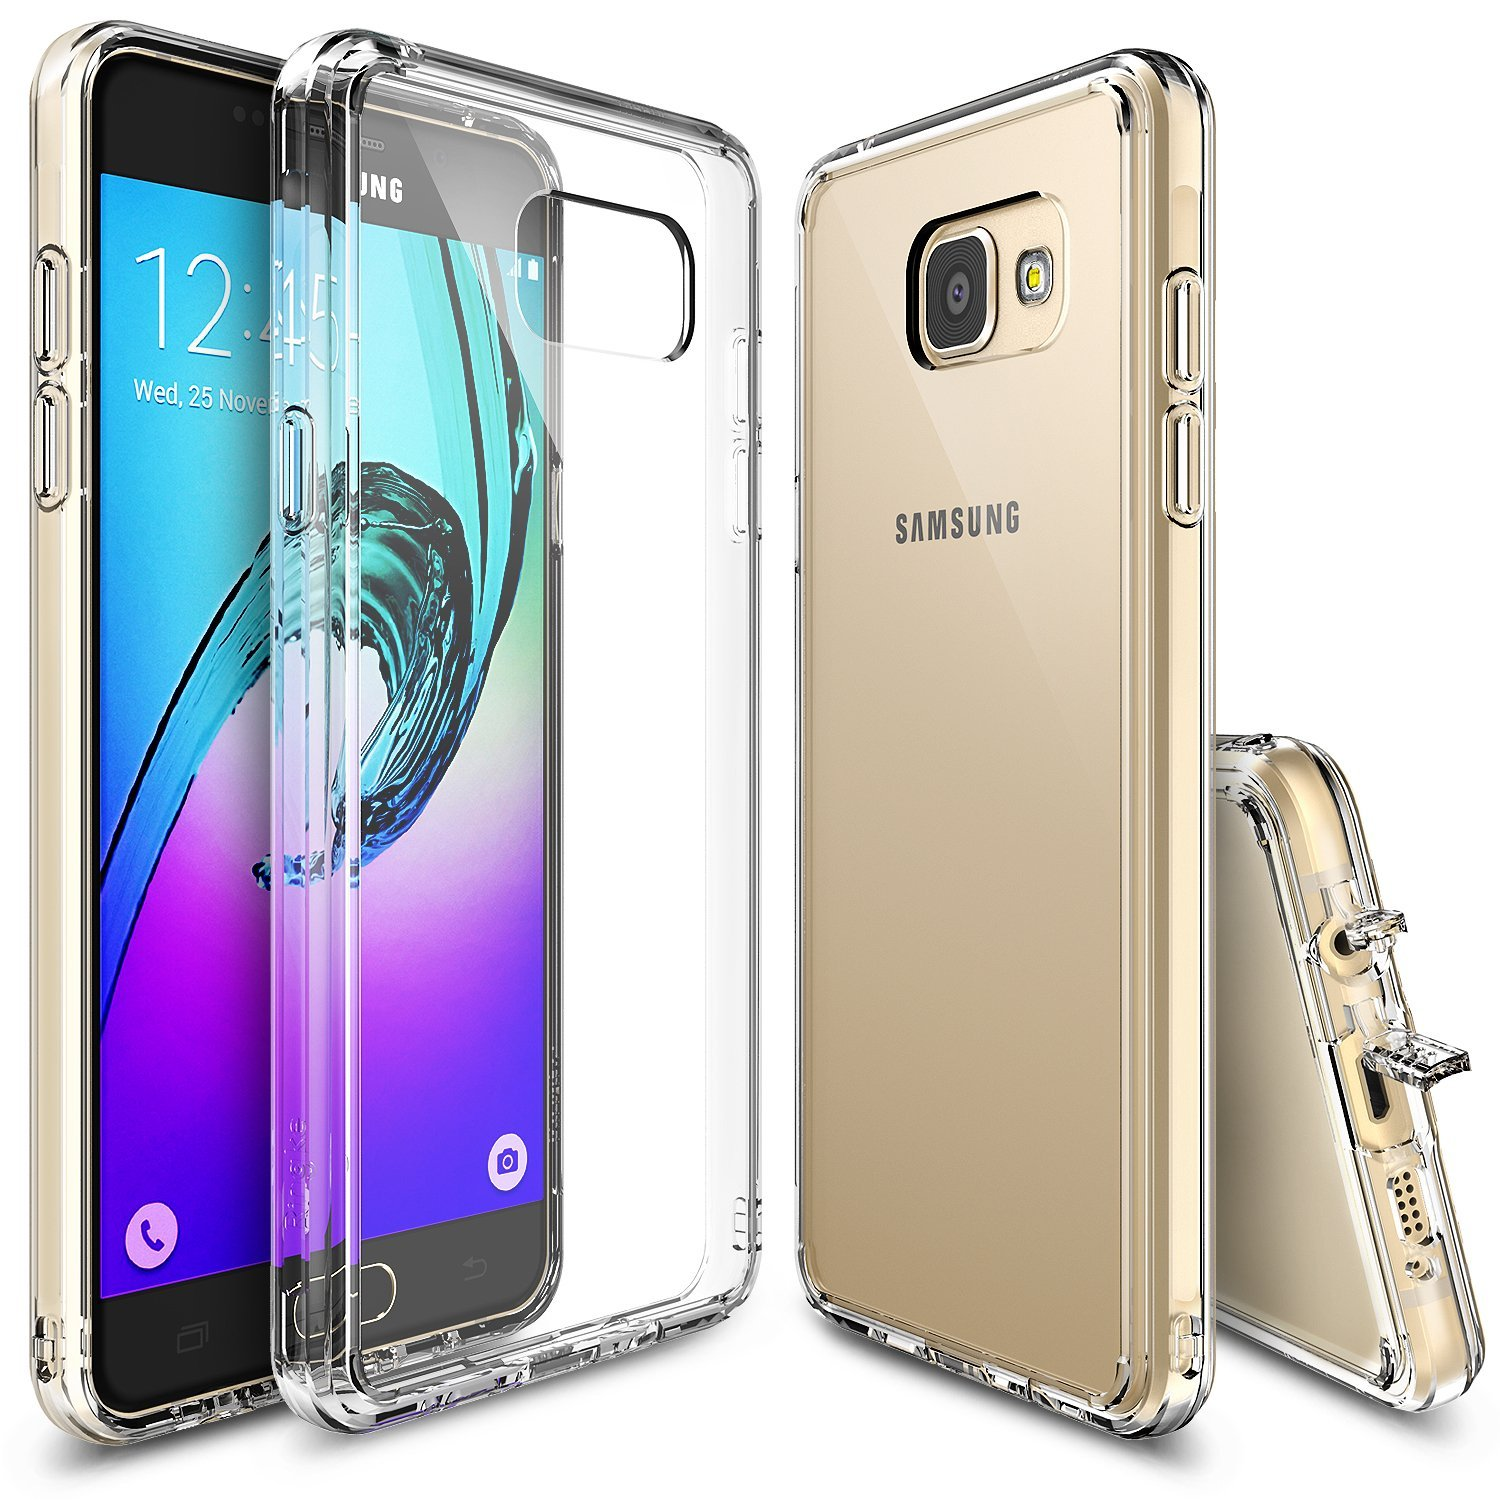 Samsung Galaxy A5 2016 Case, Ringke [Clear] FUSION Series Absorb Shock TPU Bumper Clear Case